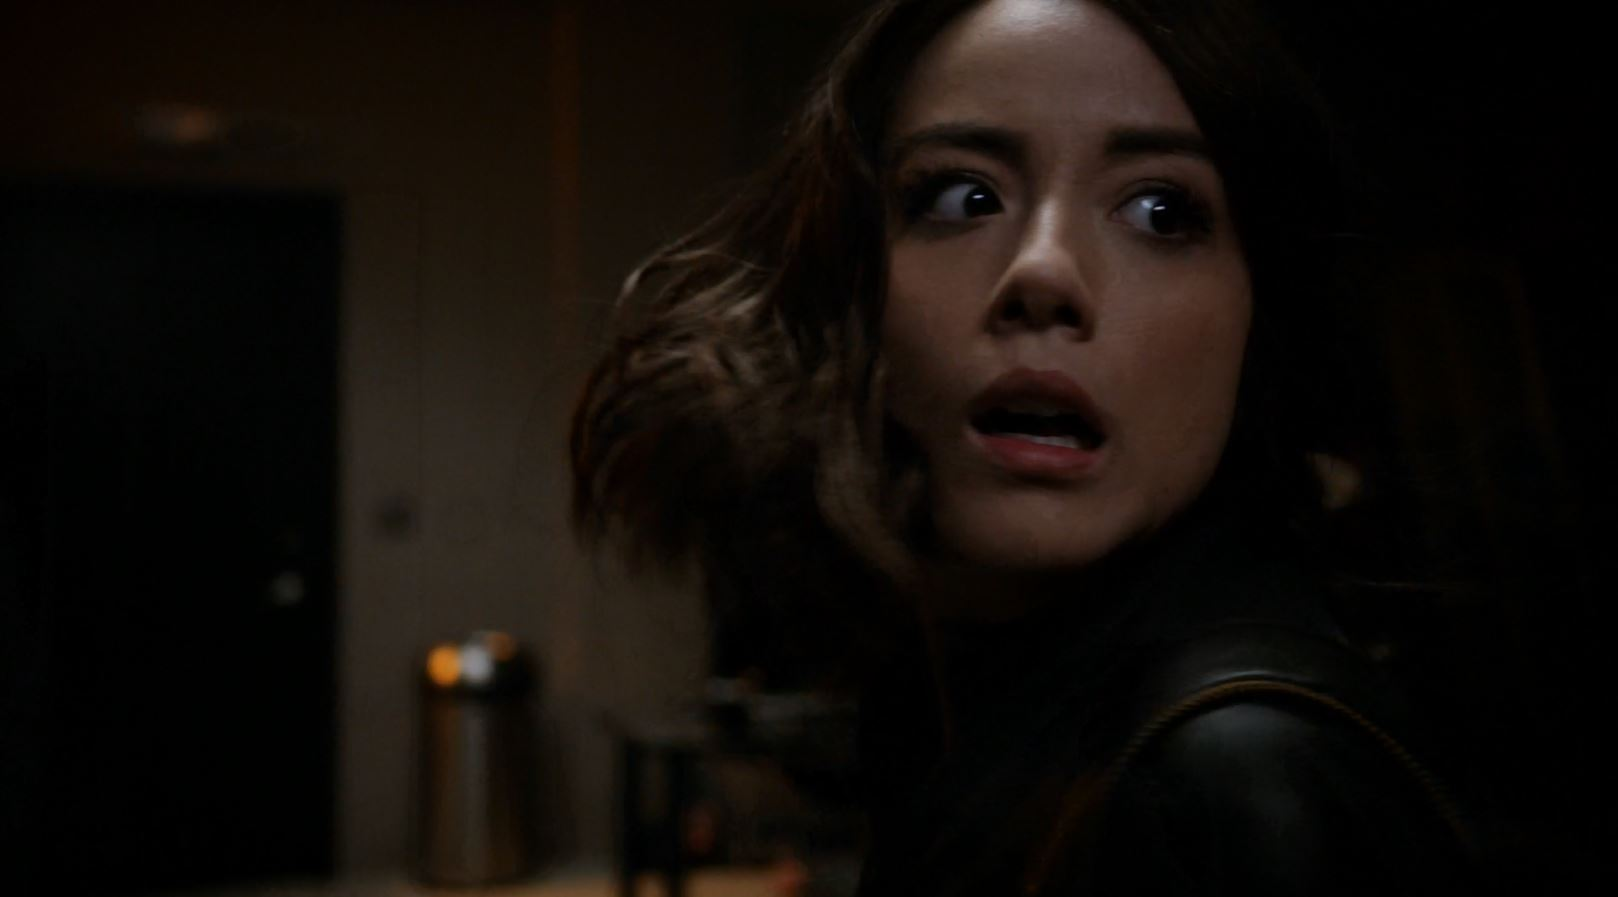 Chloe Bennet as Daisy Johnson Quake. Agents of SHIELD S3Ep15 Spacetime review.